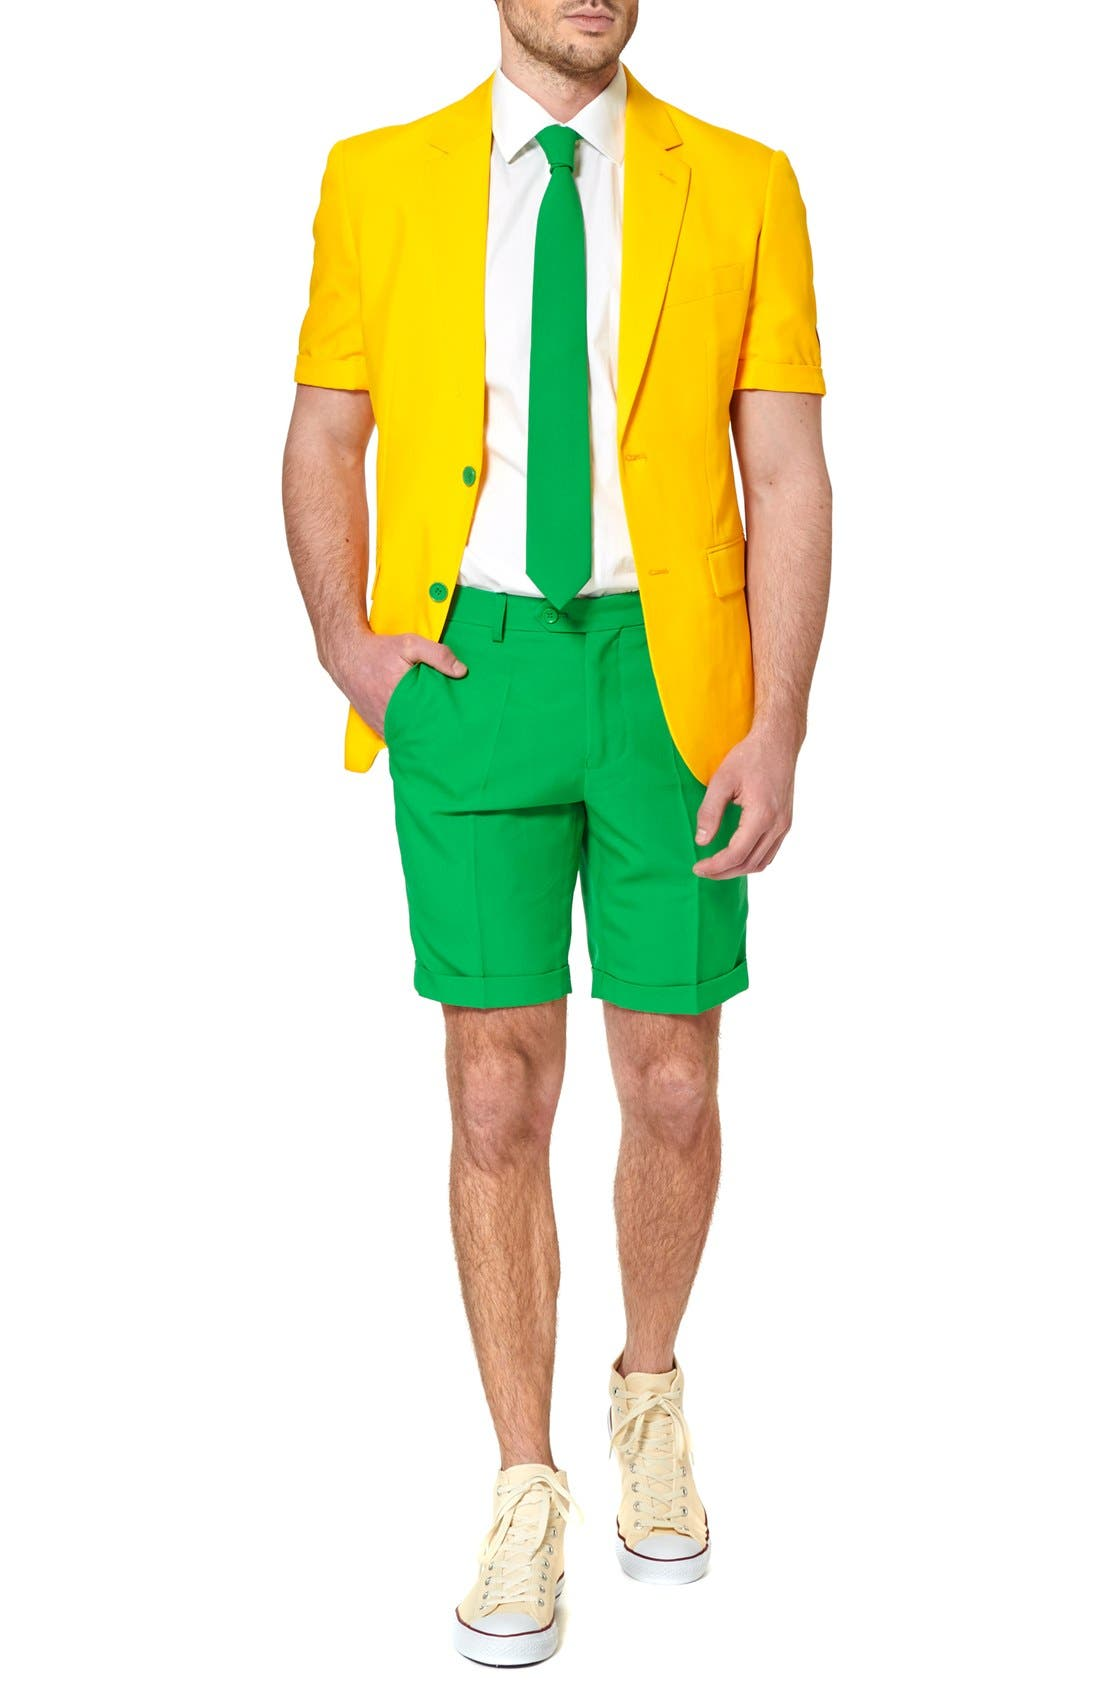 Alternate Image 1 Selected - OppoSuits 'Summer Green & Gold' Trim Fit Short Suit with Tie